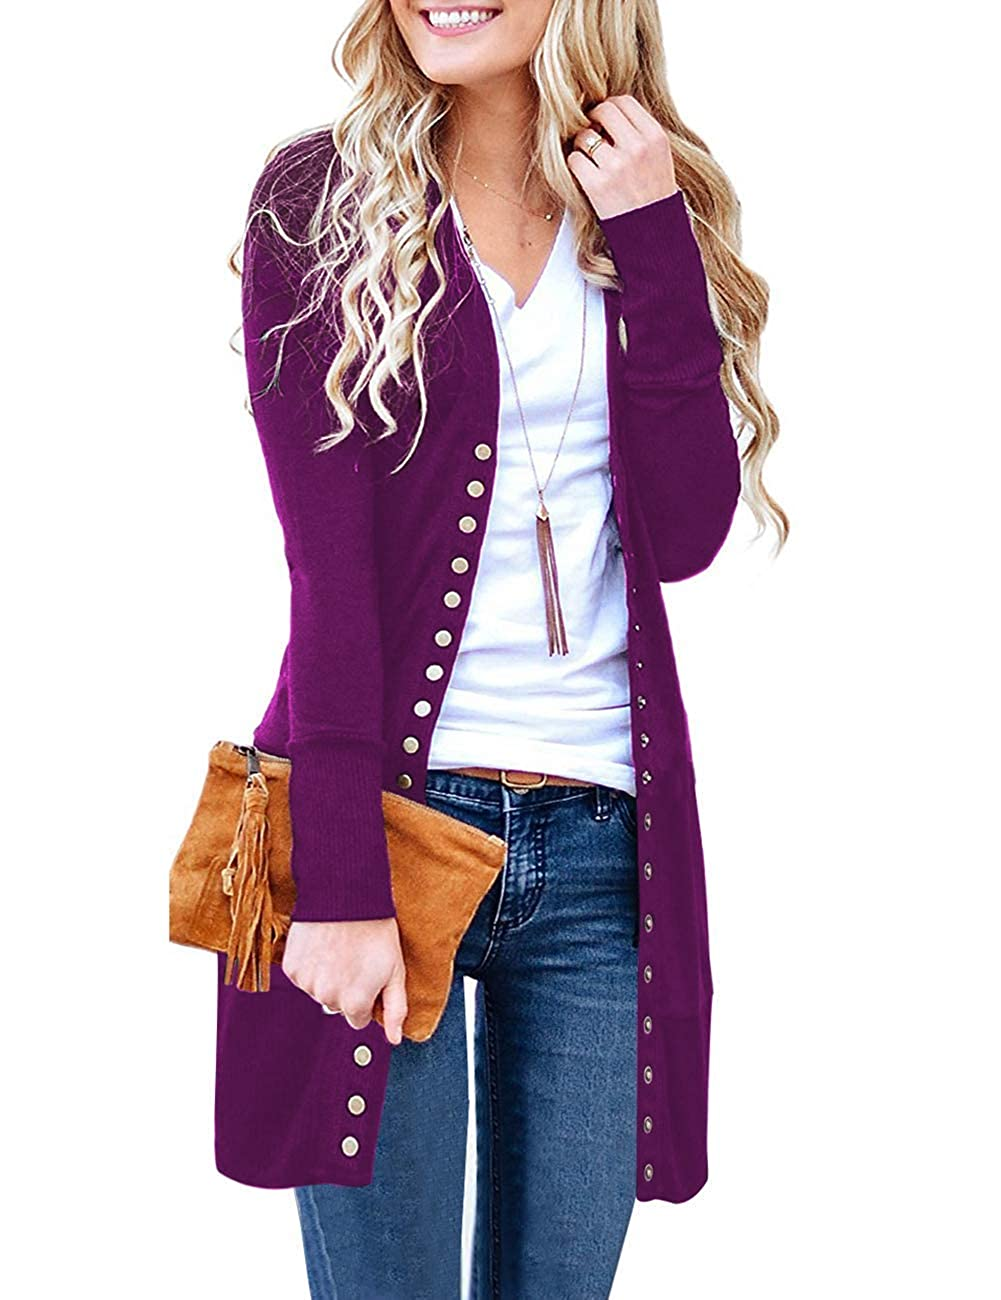 Purple Marysay Women's Long Sleeve Snap Button Down Solid color Knit Ribbed Neckline Cardigans